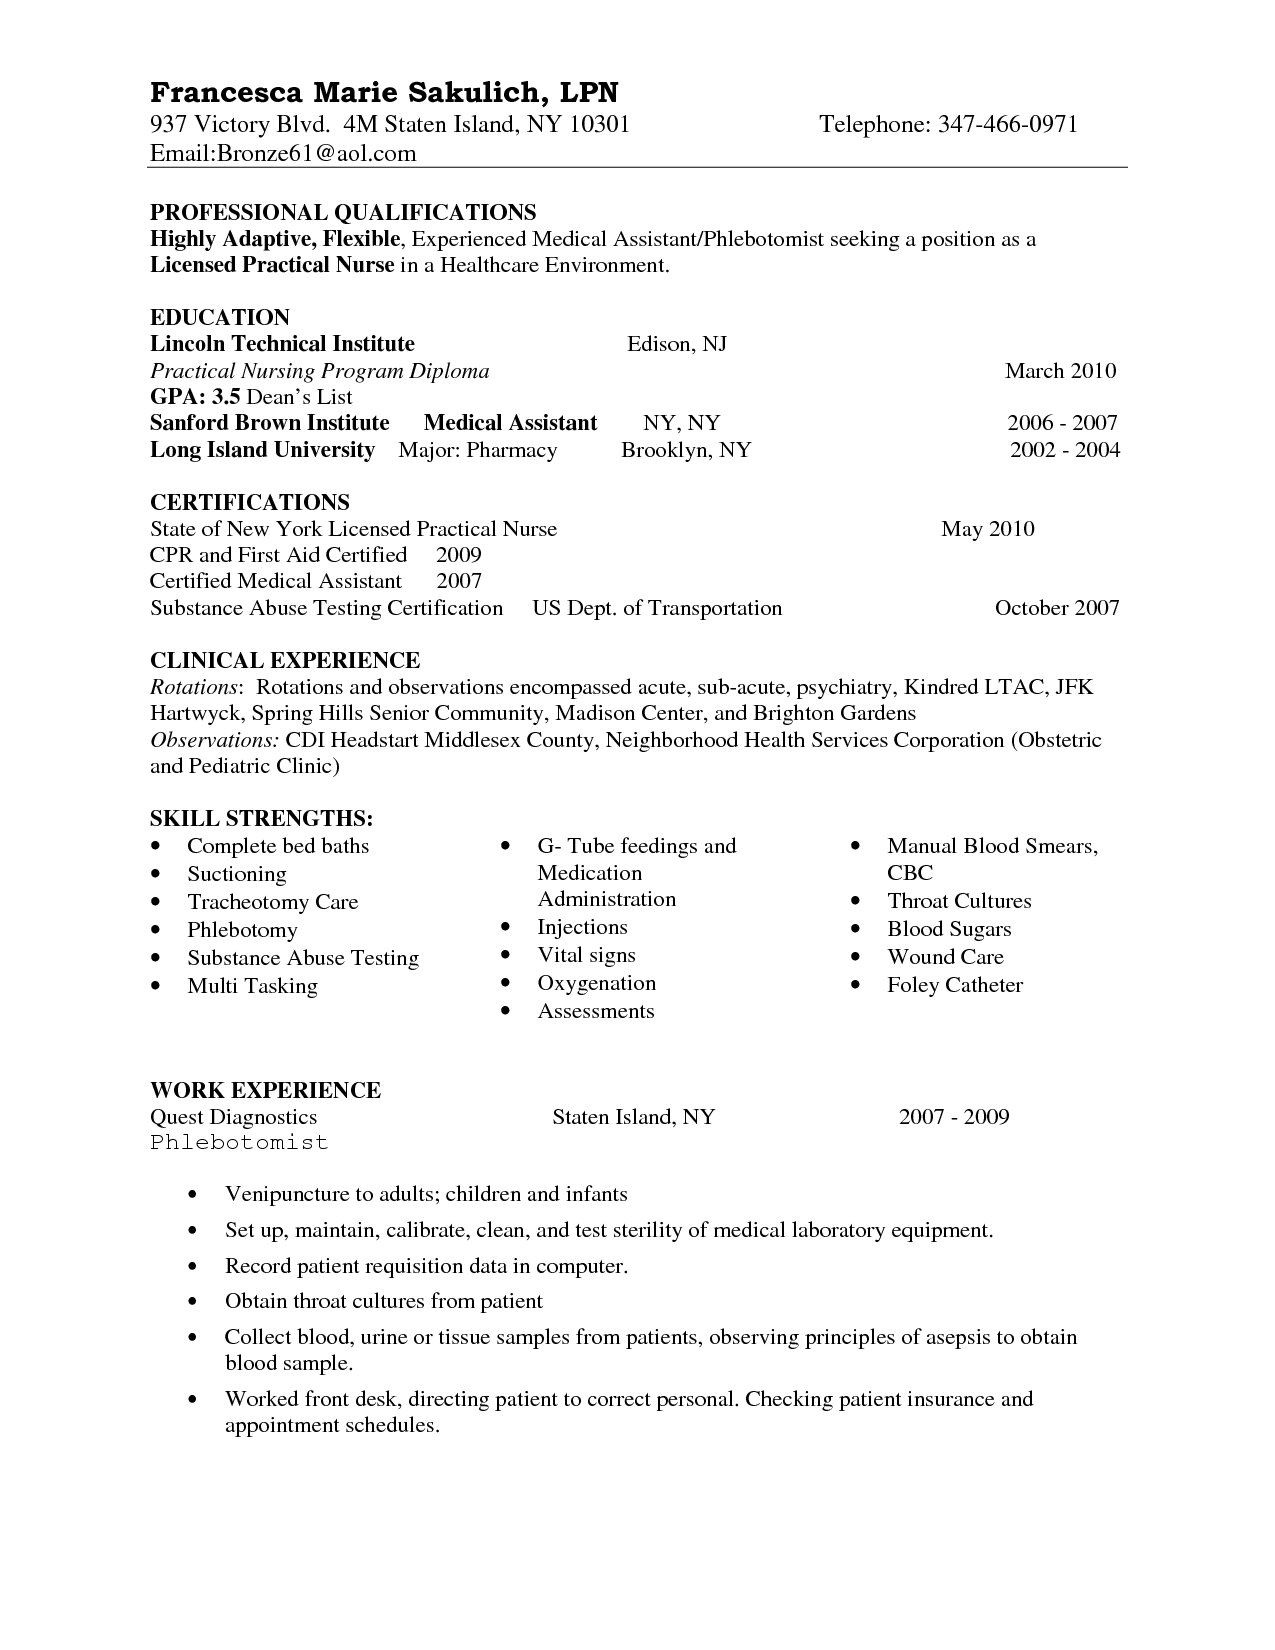 Oncology Nurse Resume Entry Level Lpn Resume Sample  Nursing  Pinterest  Nursing